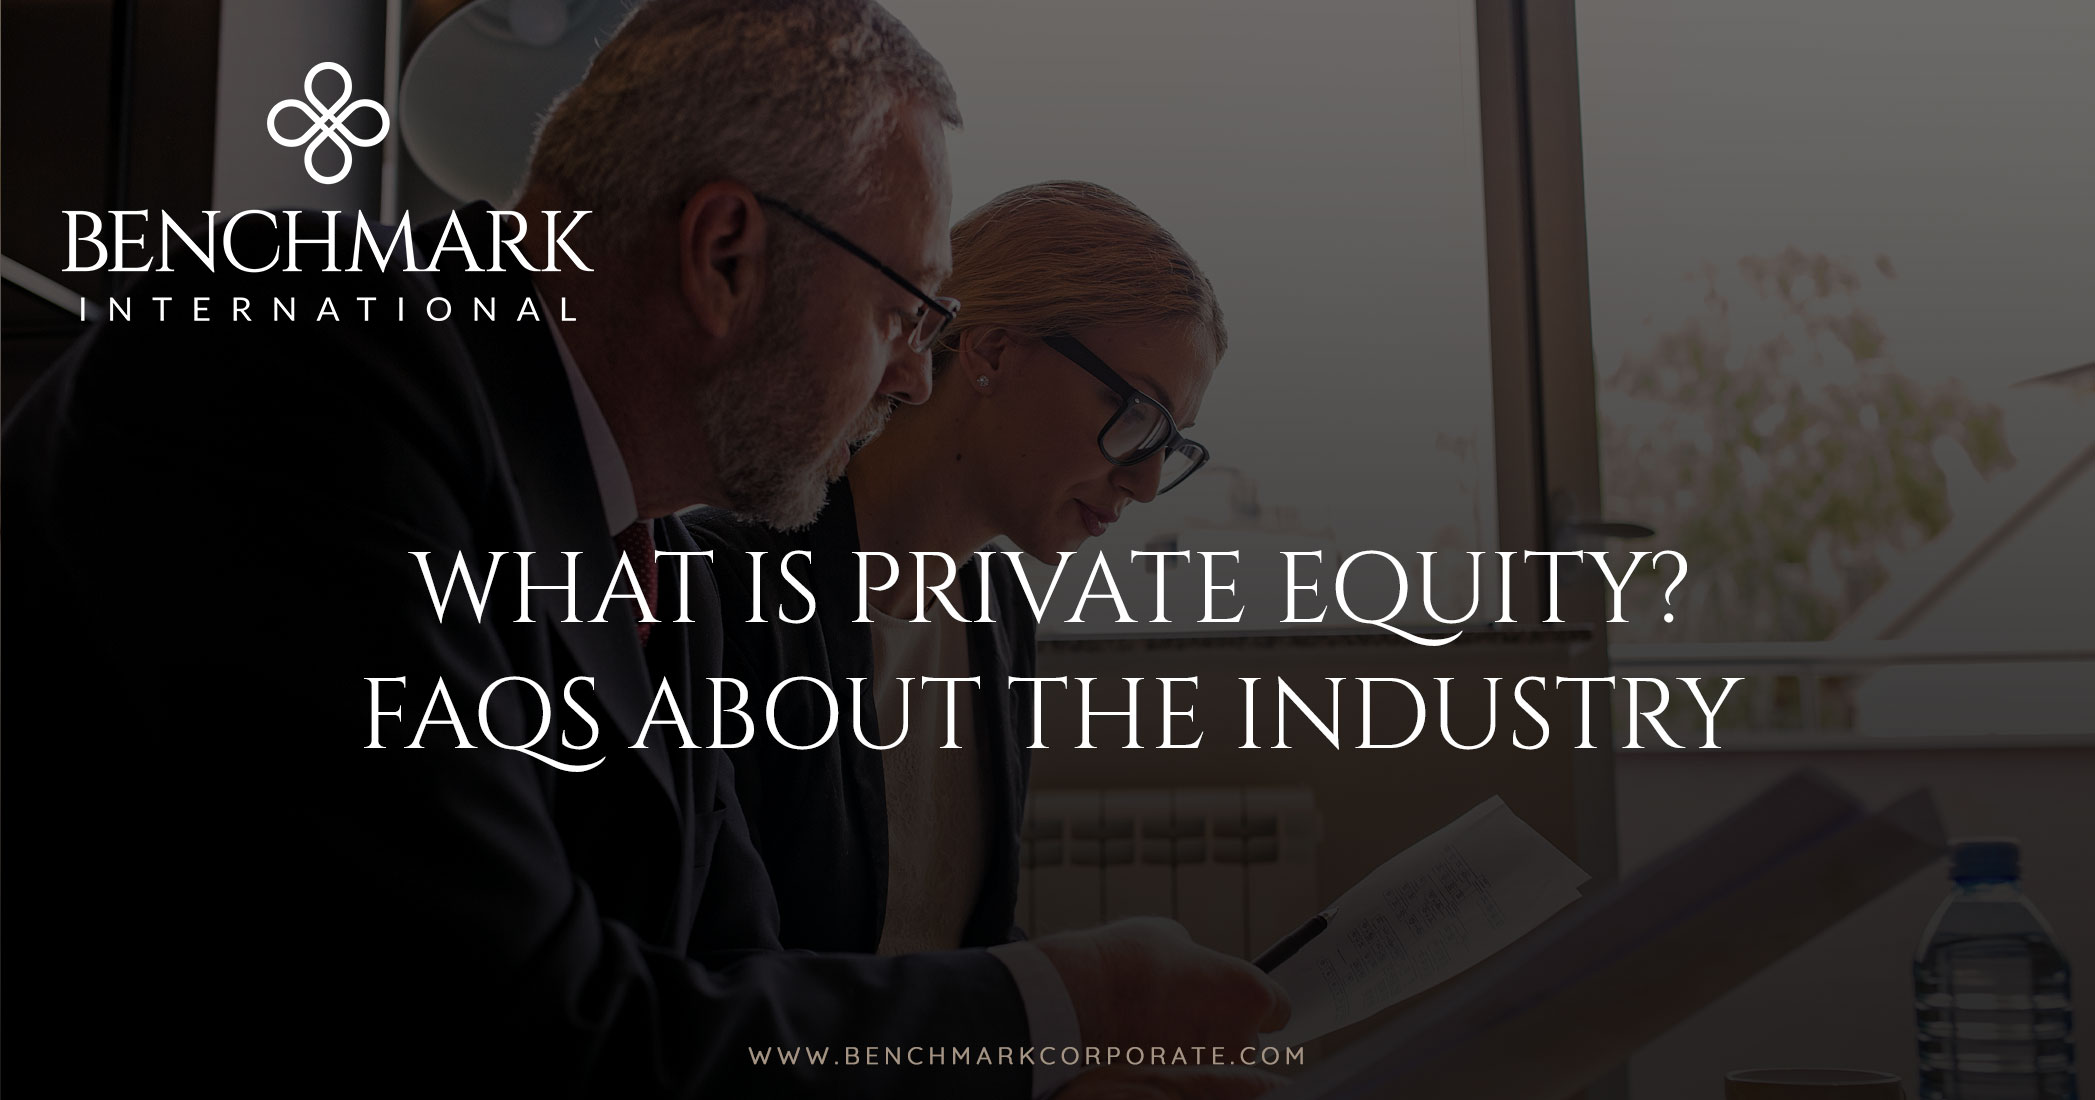 What is Private Equity? FAQs About the Industry